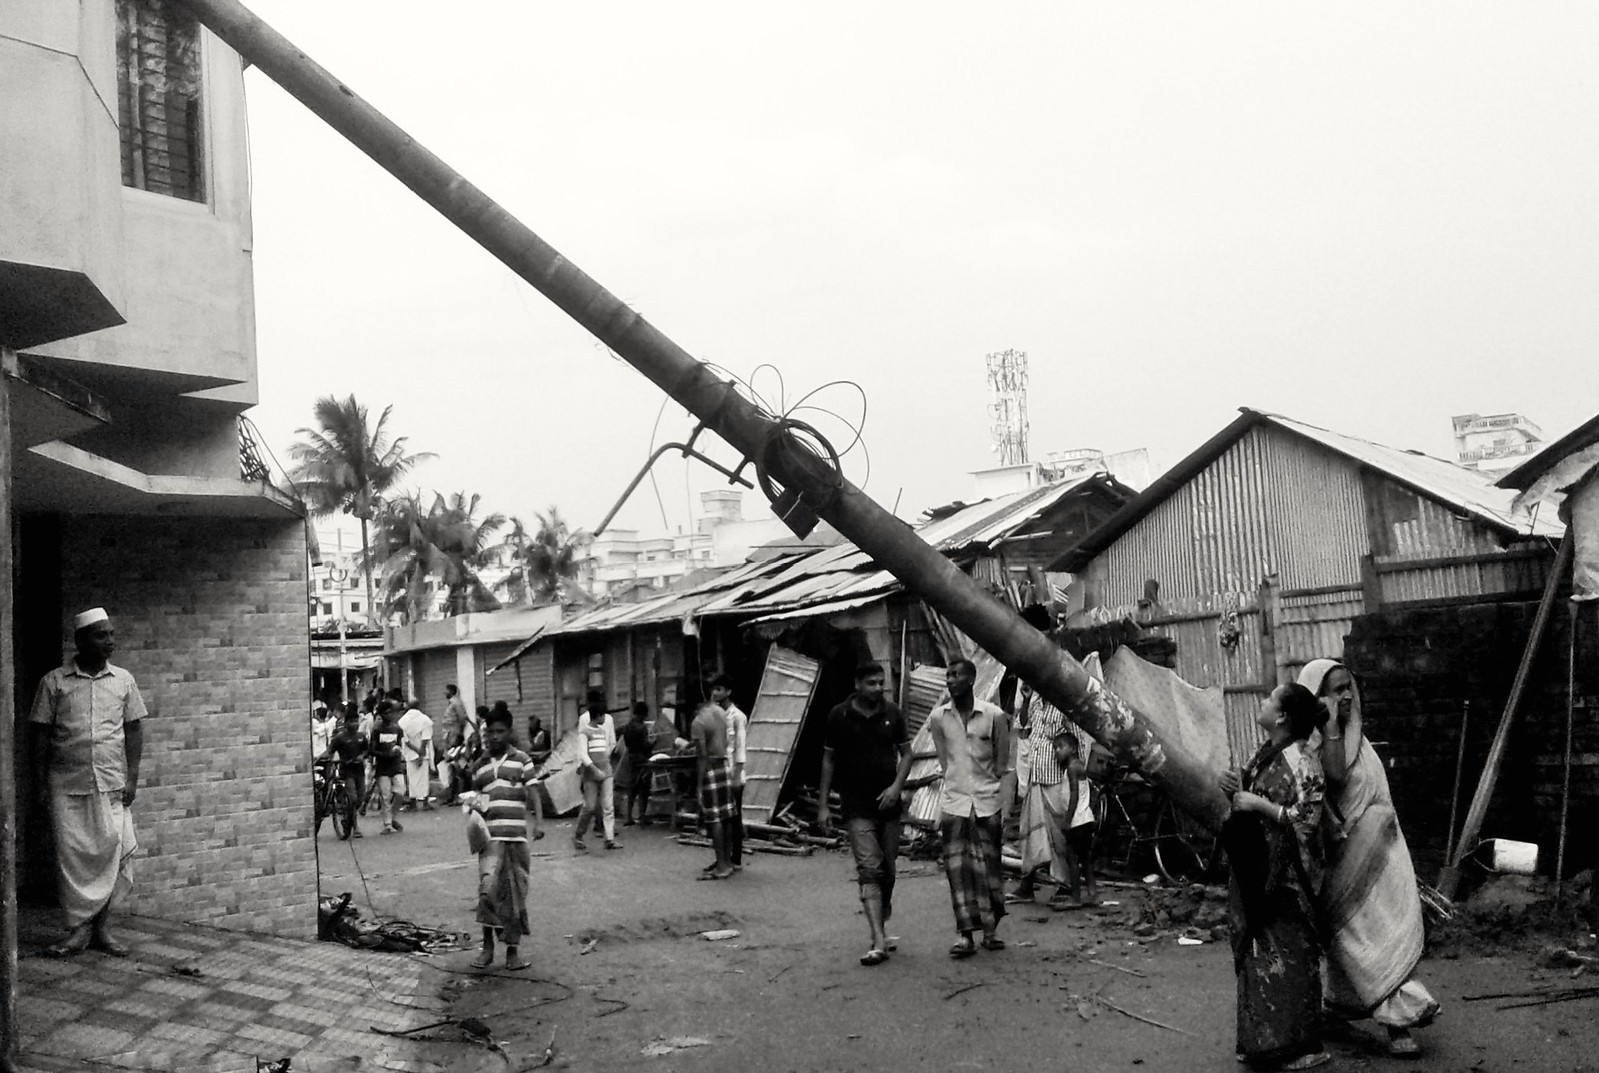 A Electric pillar has been fallen Down to the building after q furious Tornado,People around bay of Bengal Have to face it every year, | by nayeemsiddiquee